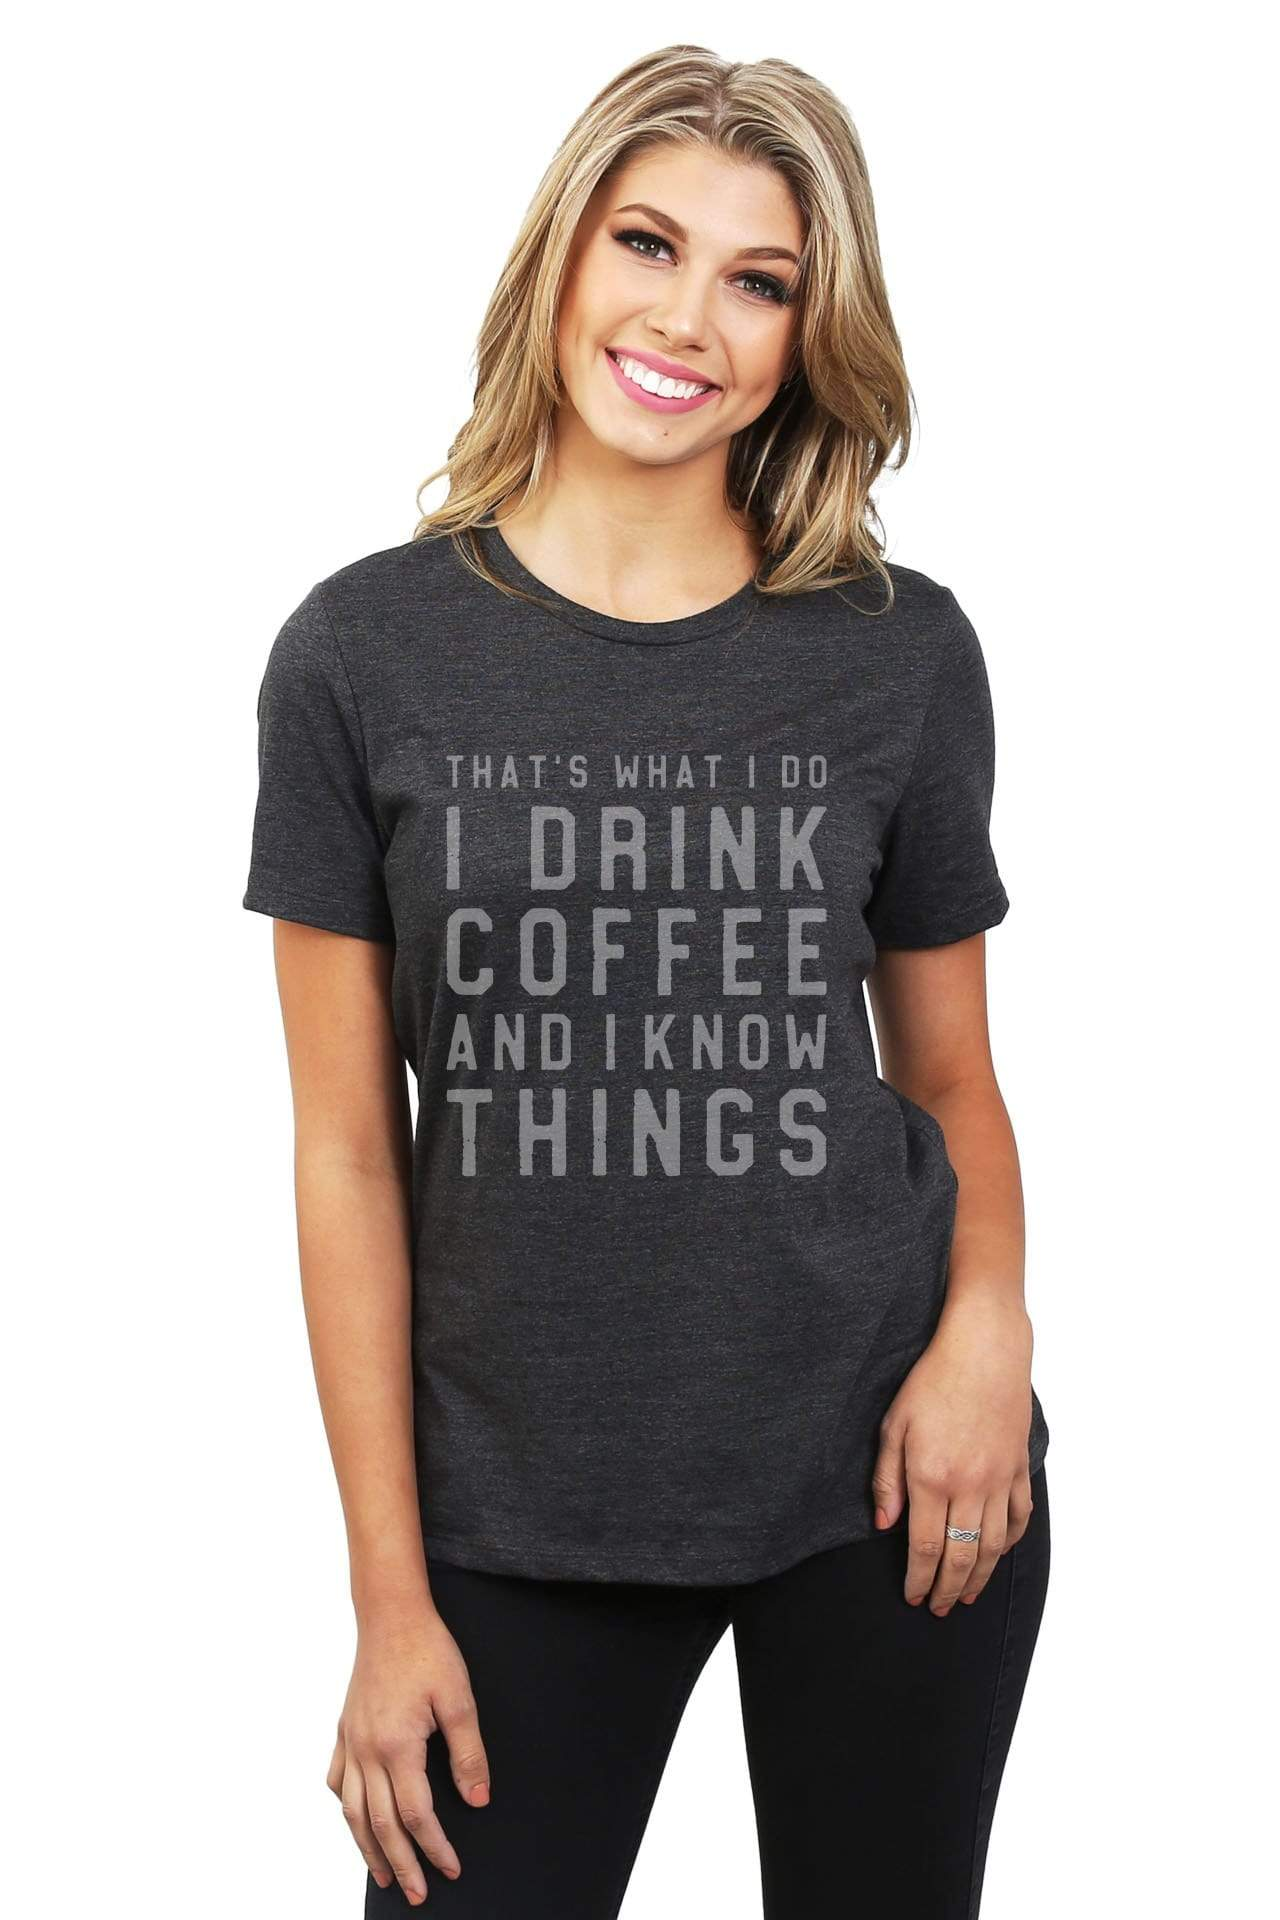 I Drink Coffee And I Know Things